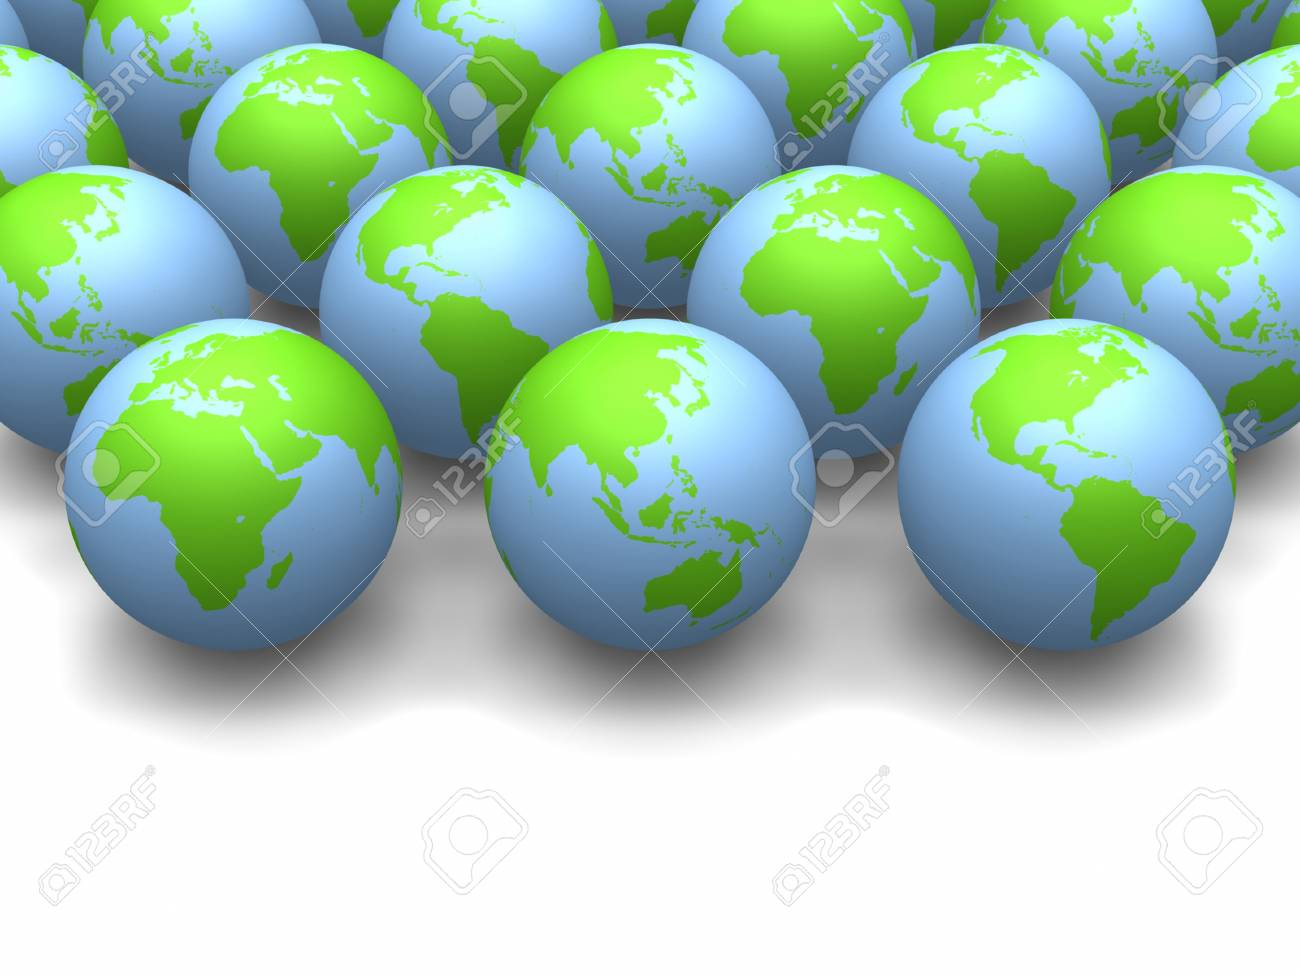 3D globes side by side with space for text. Stock Photo - 10103463